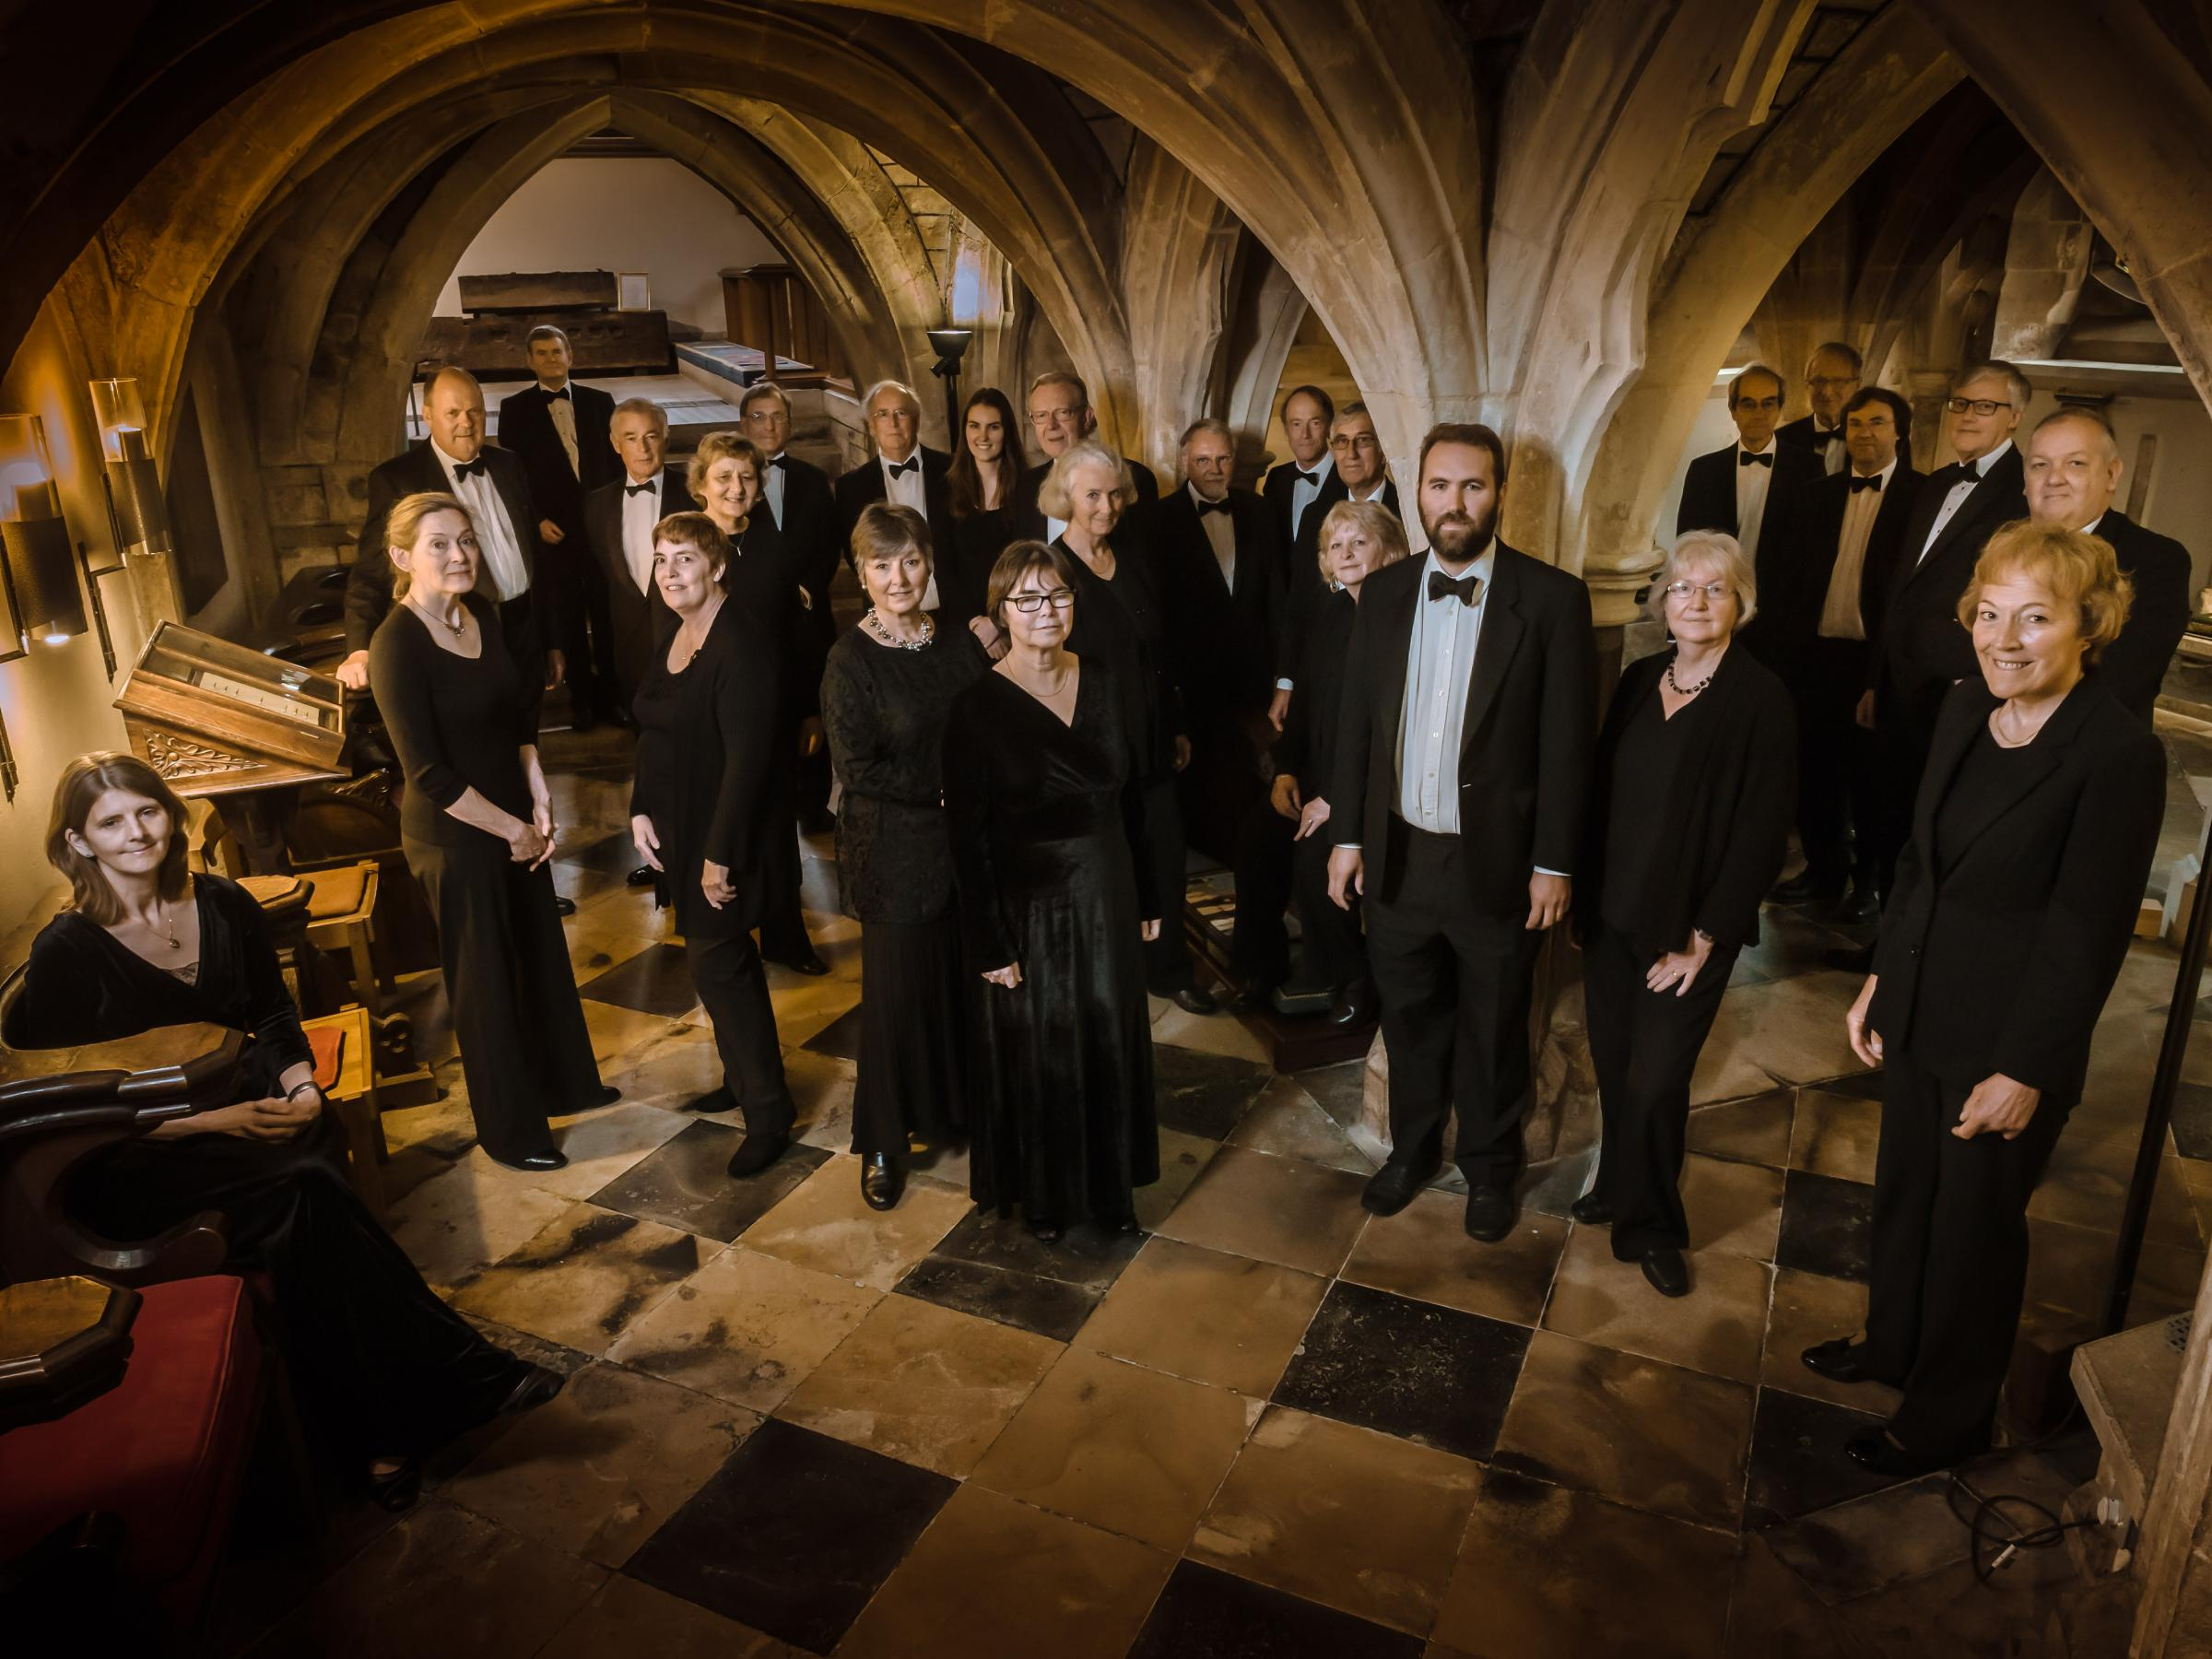 Bournemouth Sinfonietta Choir - Summer Soirée, The changing seasons